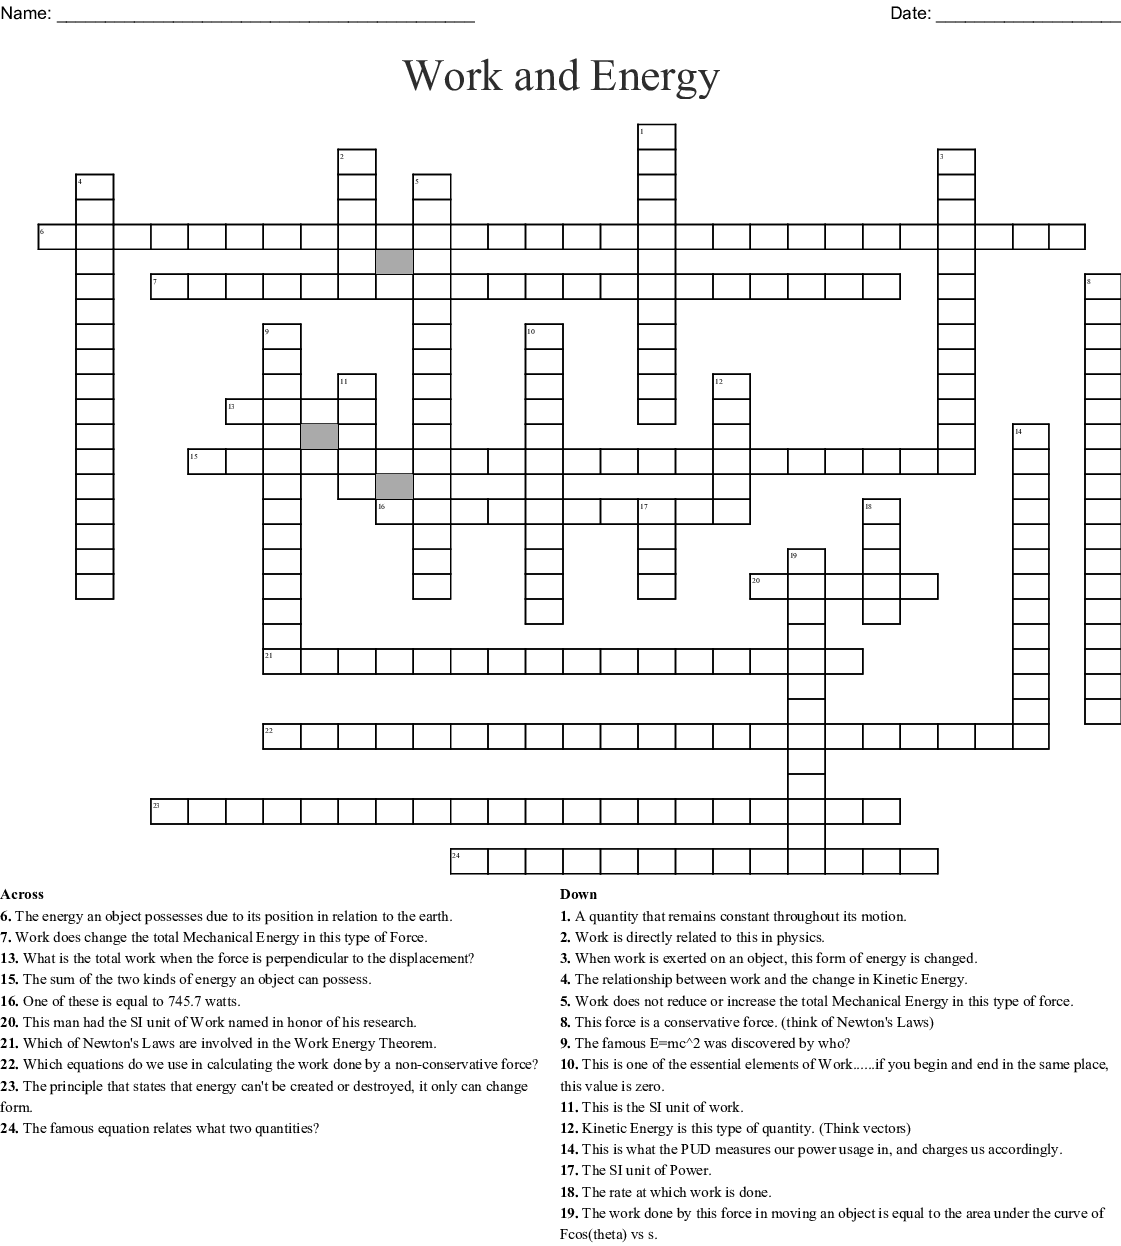 Work, Energy, and Power Crossword - WordMint